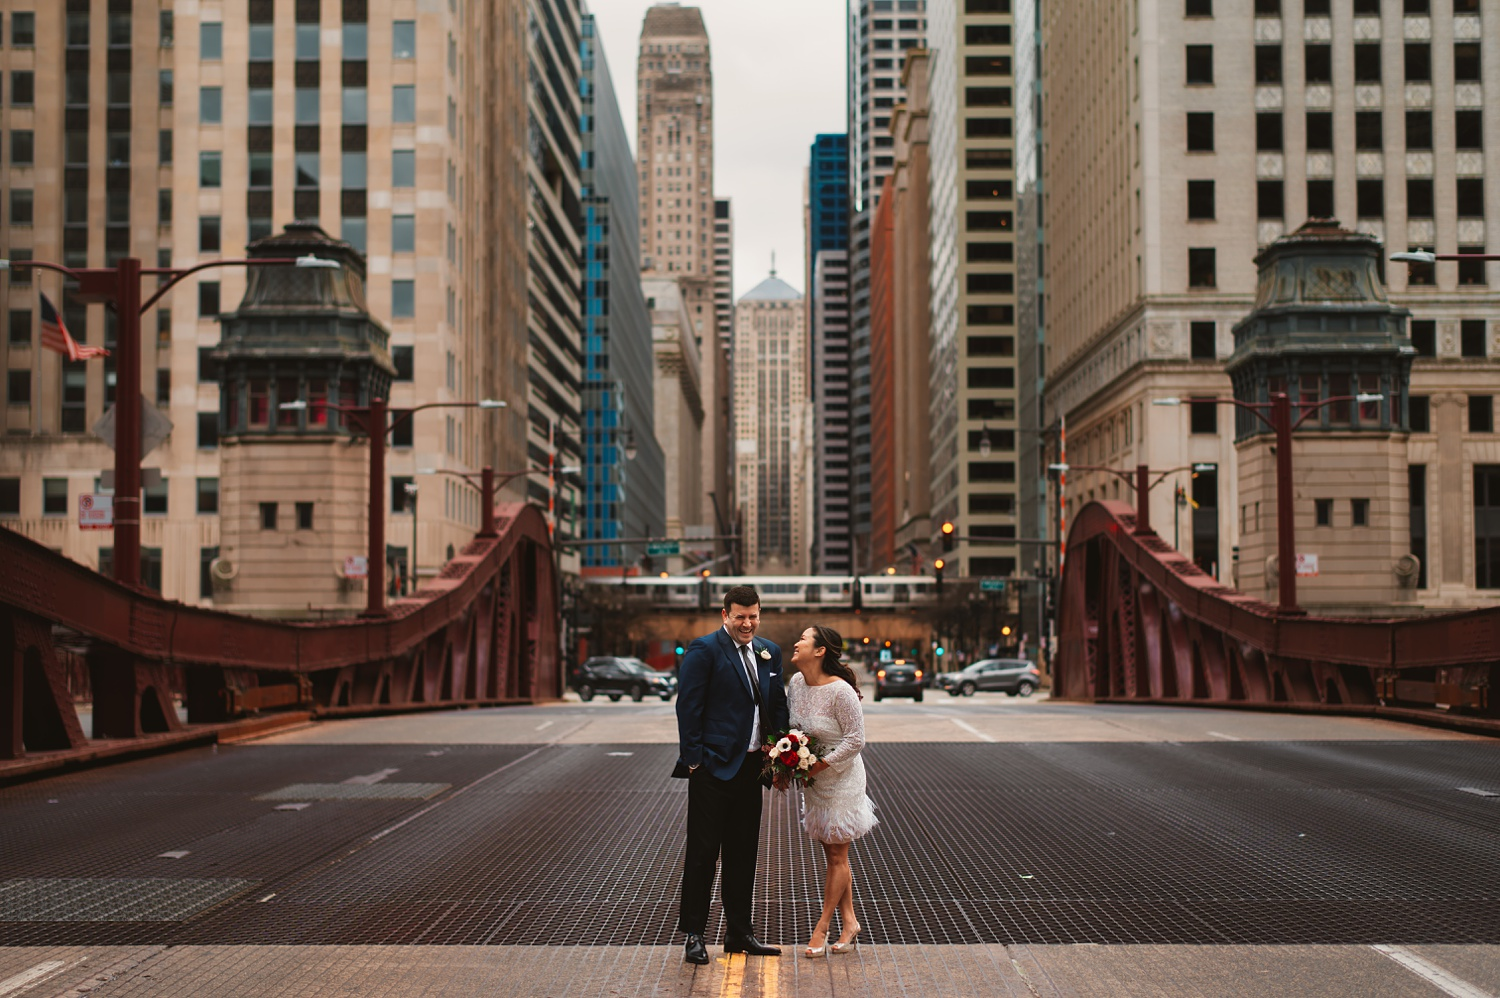 LaSalle Street Bridge wedding photos - The Adamkovi, in the middle of the street